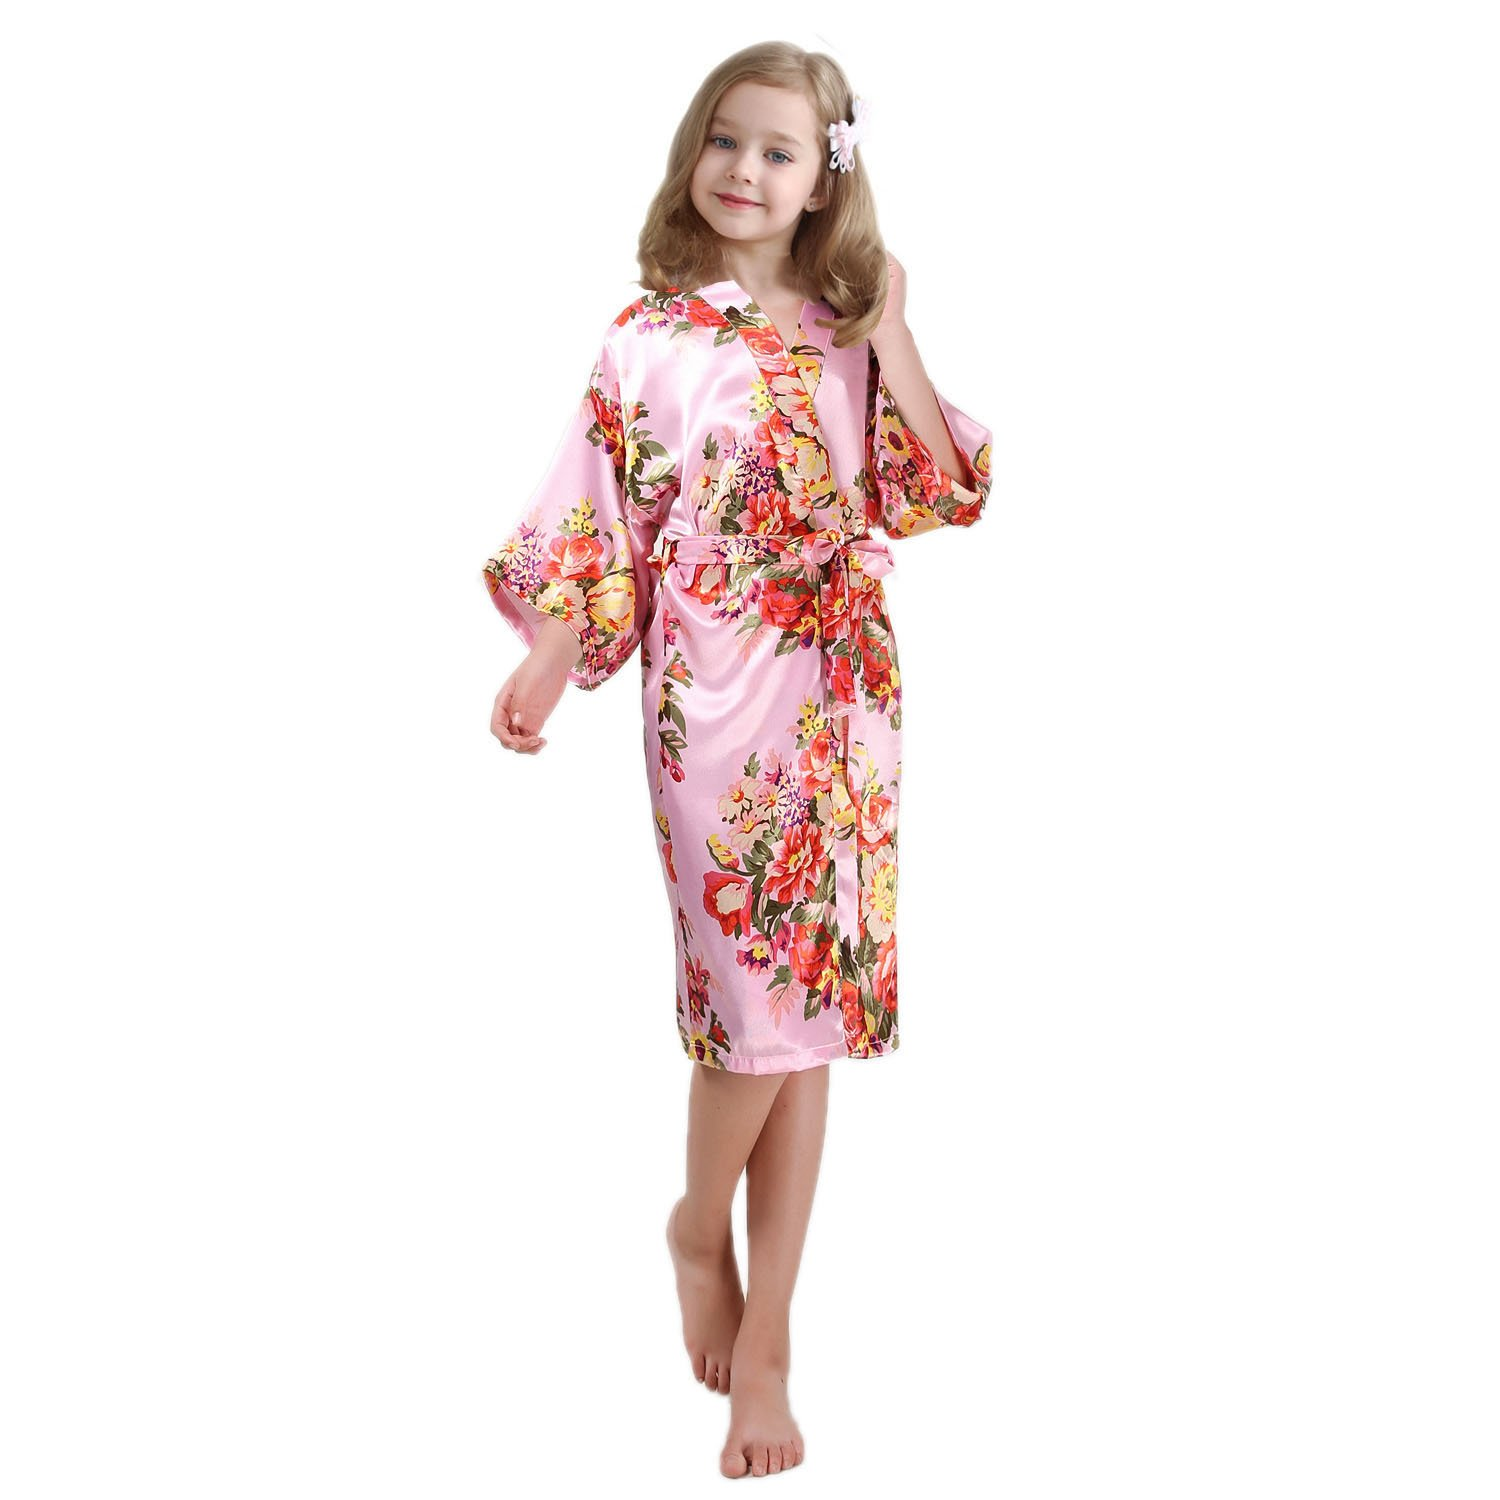 FCTREE Girls' Satin Kimono Robe Girls' Nightgown For Spa Party Wedding Birthday (8-9 Years, Pink)